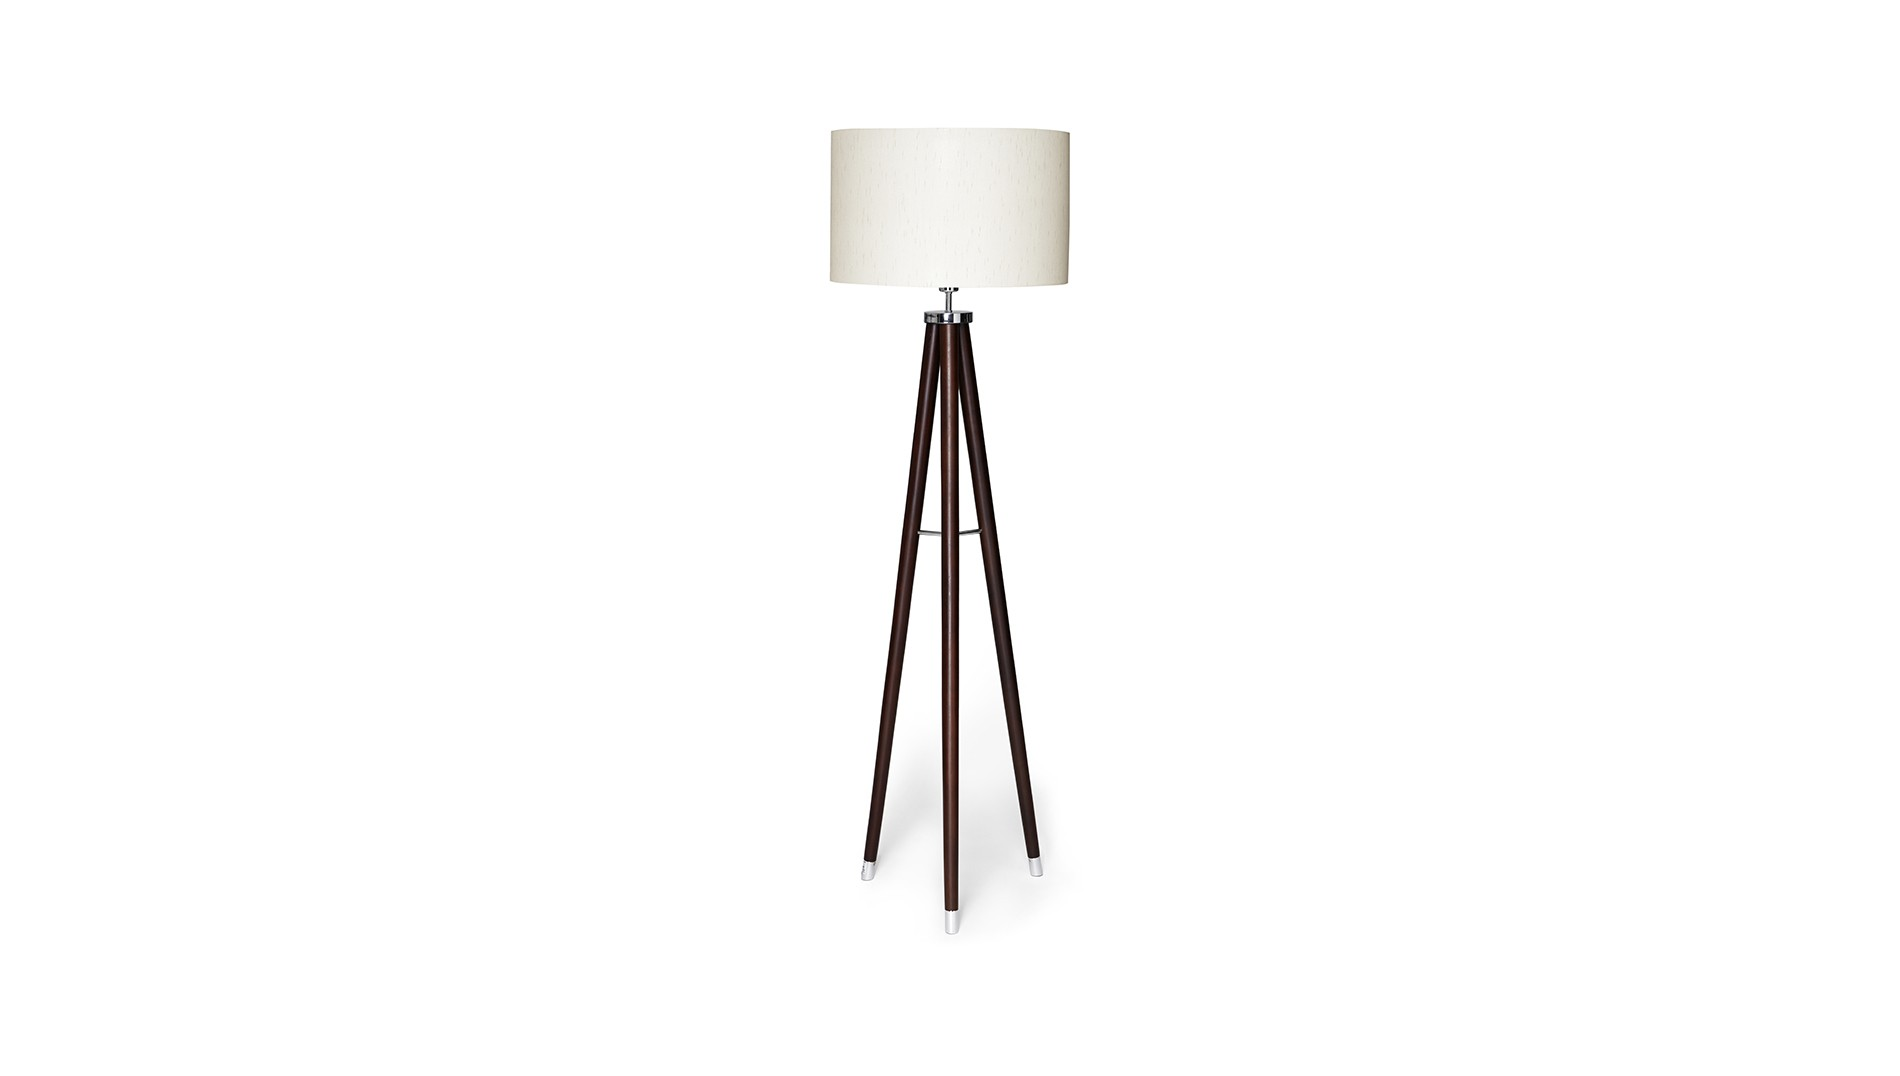 Target Tripod Floor Lamp | Tripod Lamp | Wood Tripod Floor Lamp